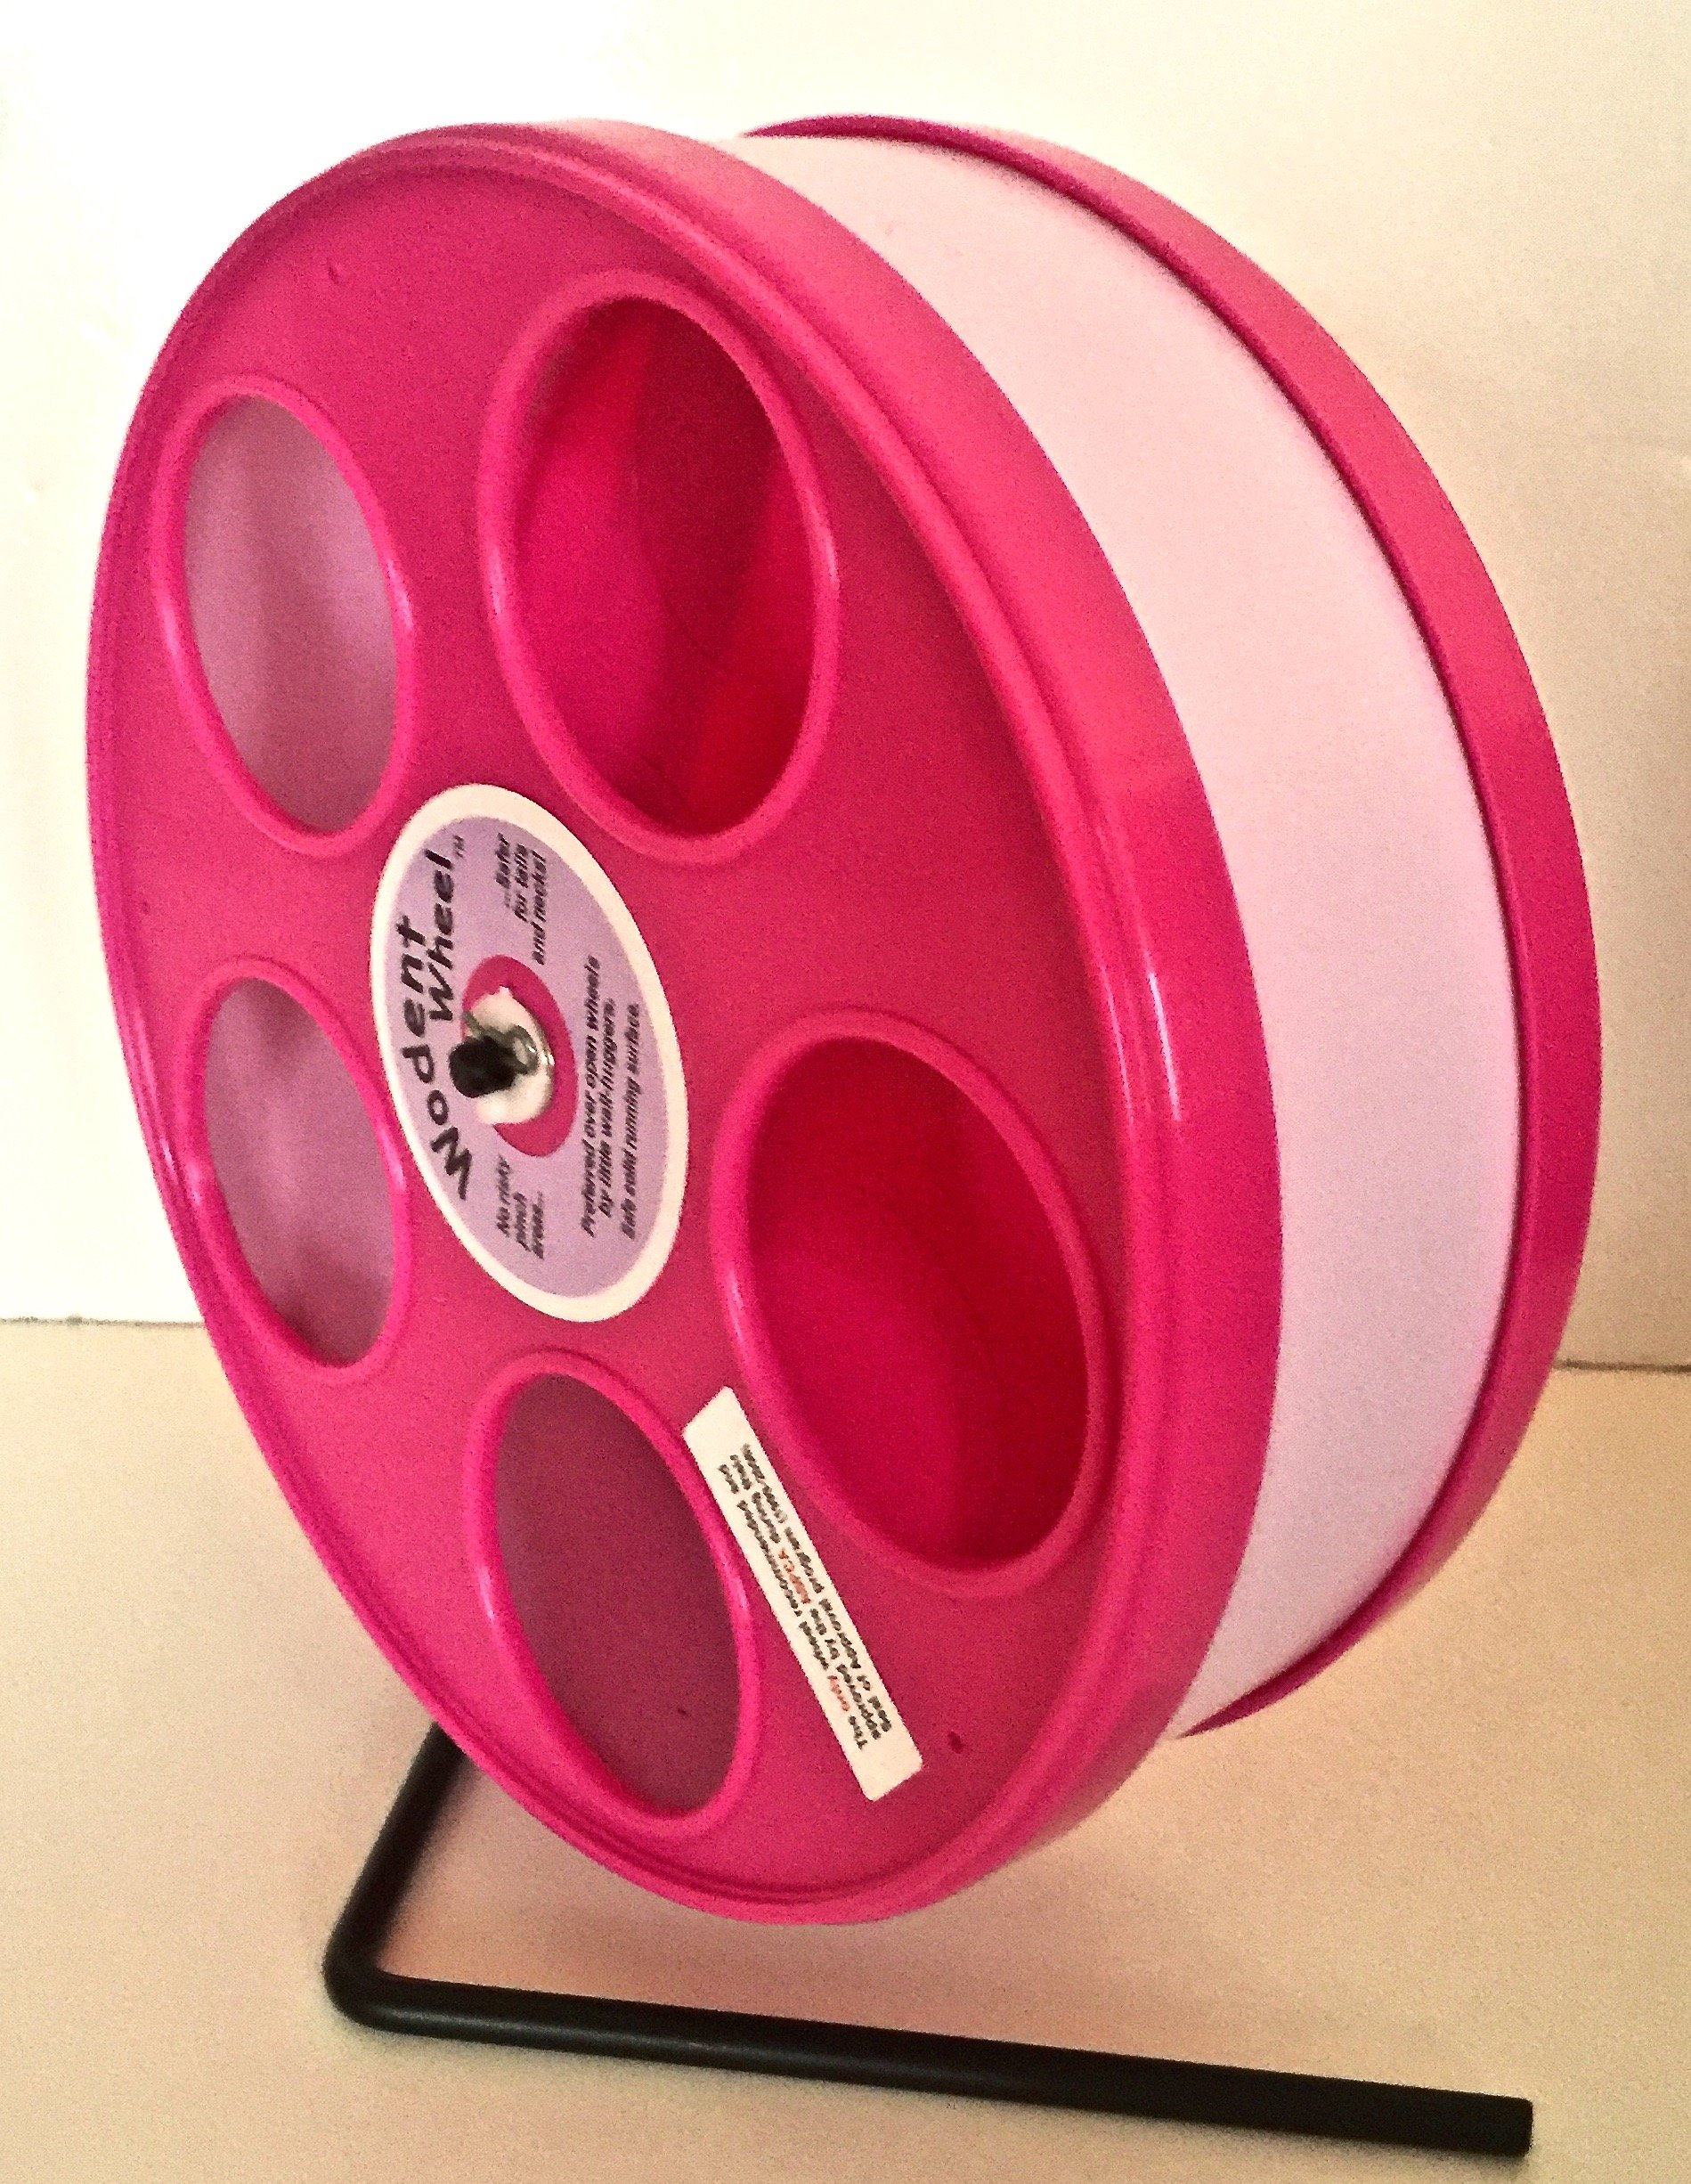 Small Animal 11''Diameter WODENT Exercise Wheel(Pink W. Lavender Track) Total Height 12.3''